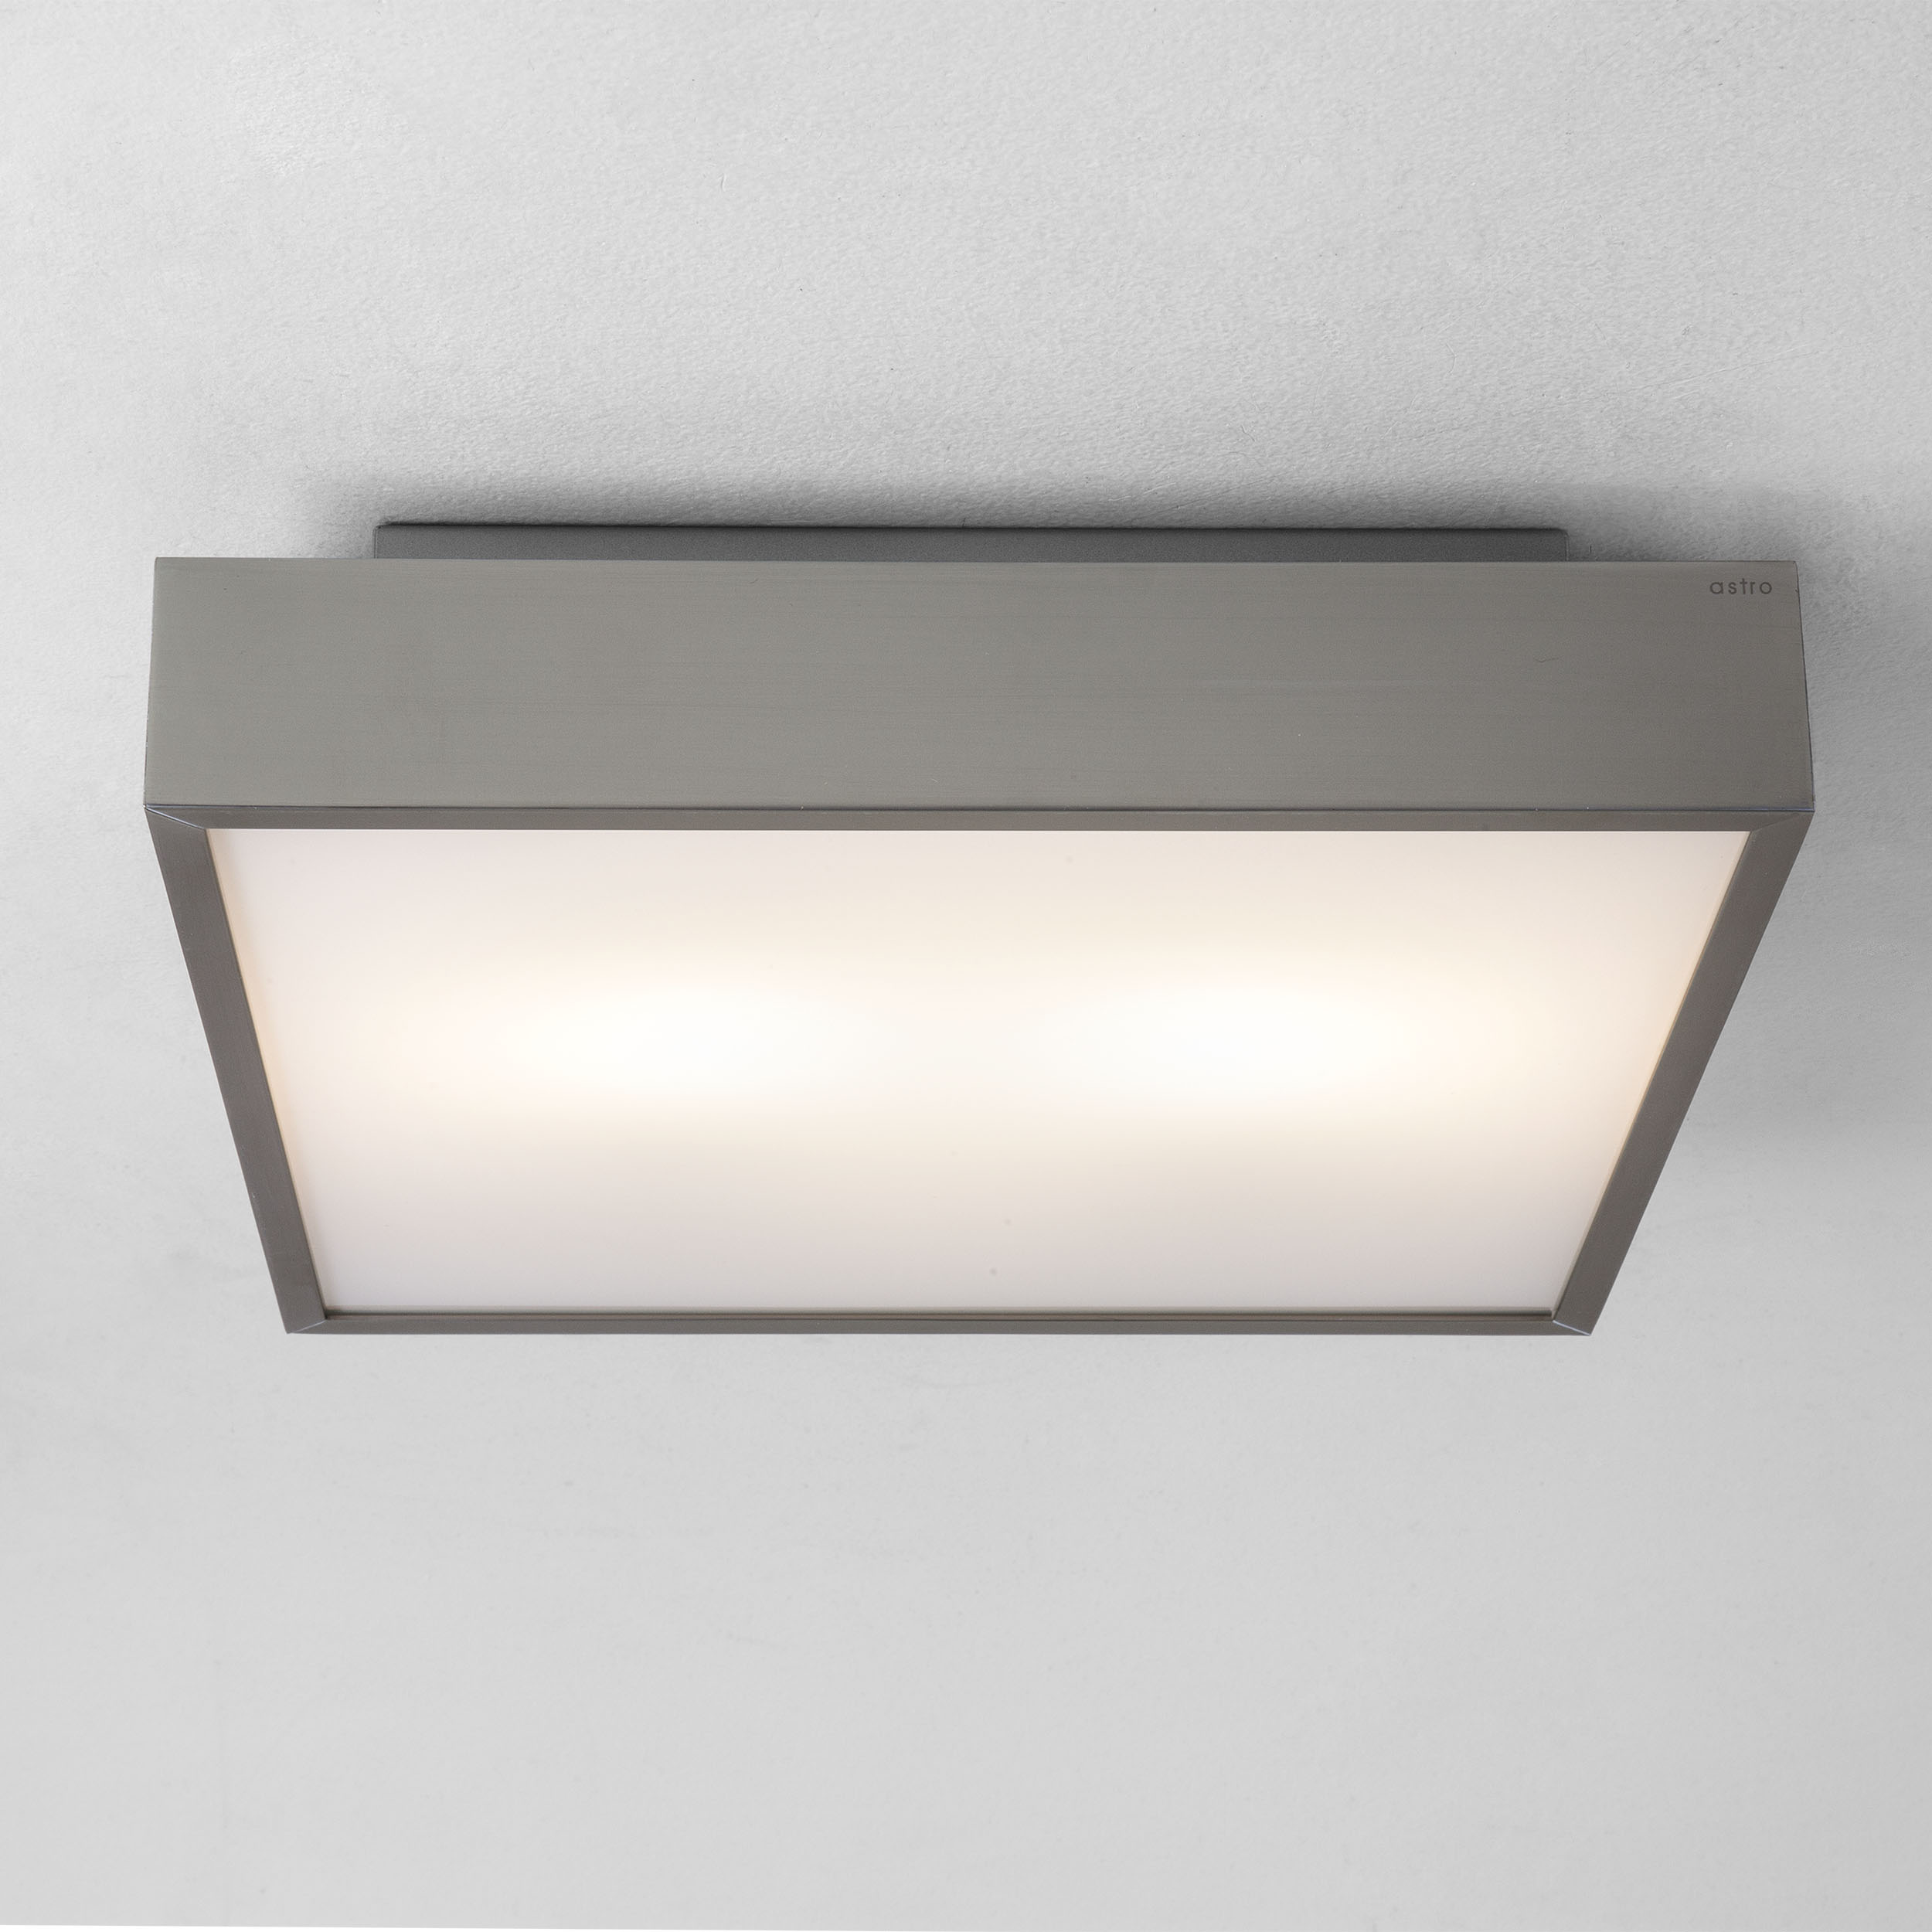 Led Square Bathroom Ceiling Light 300 X 300 Astro Taketa 17 7w Matt Nickel Ip44 Ebay